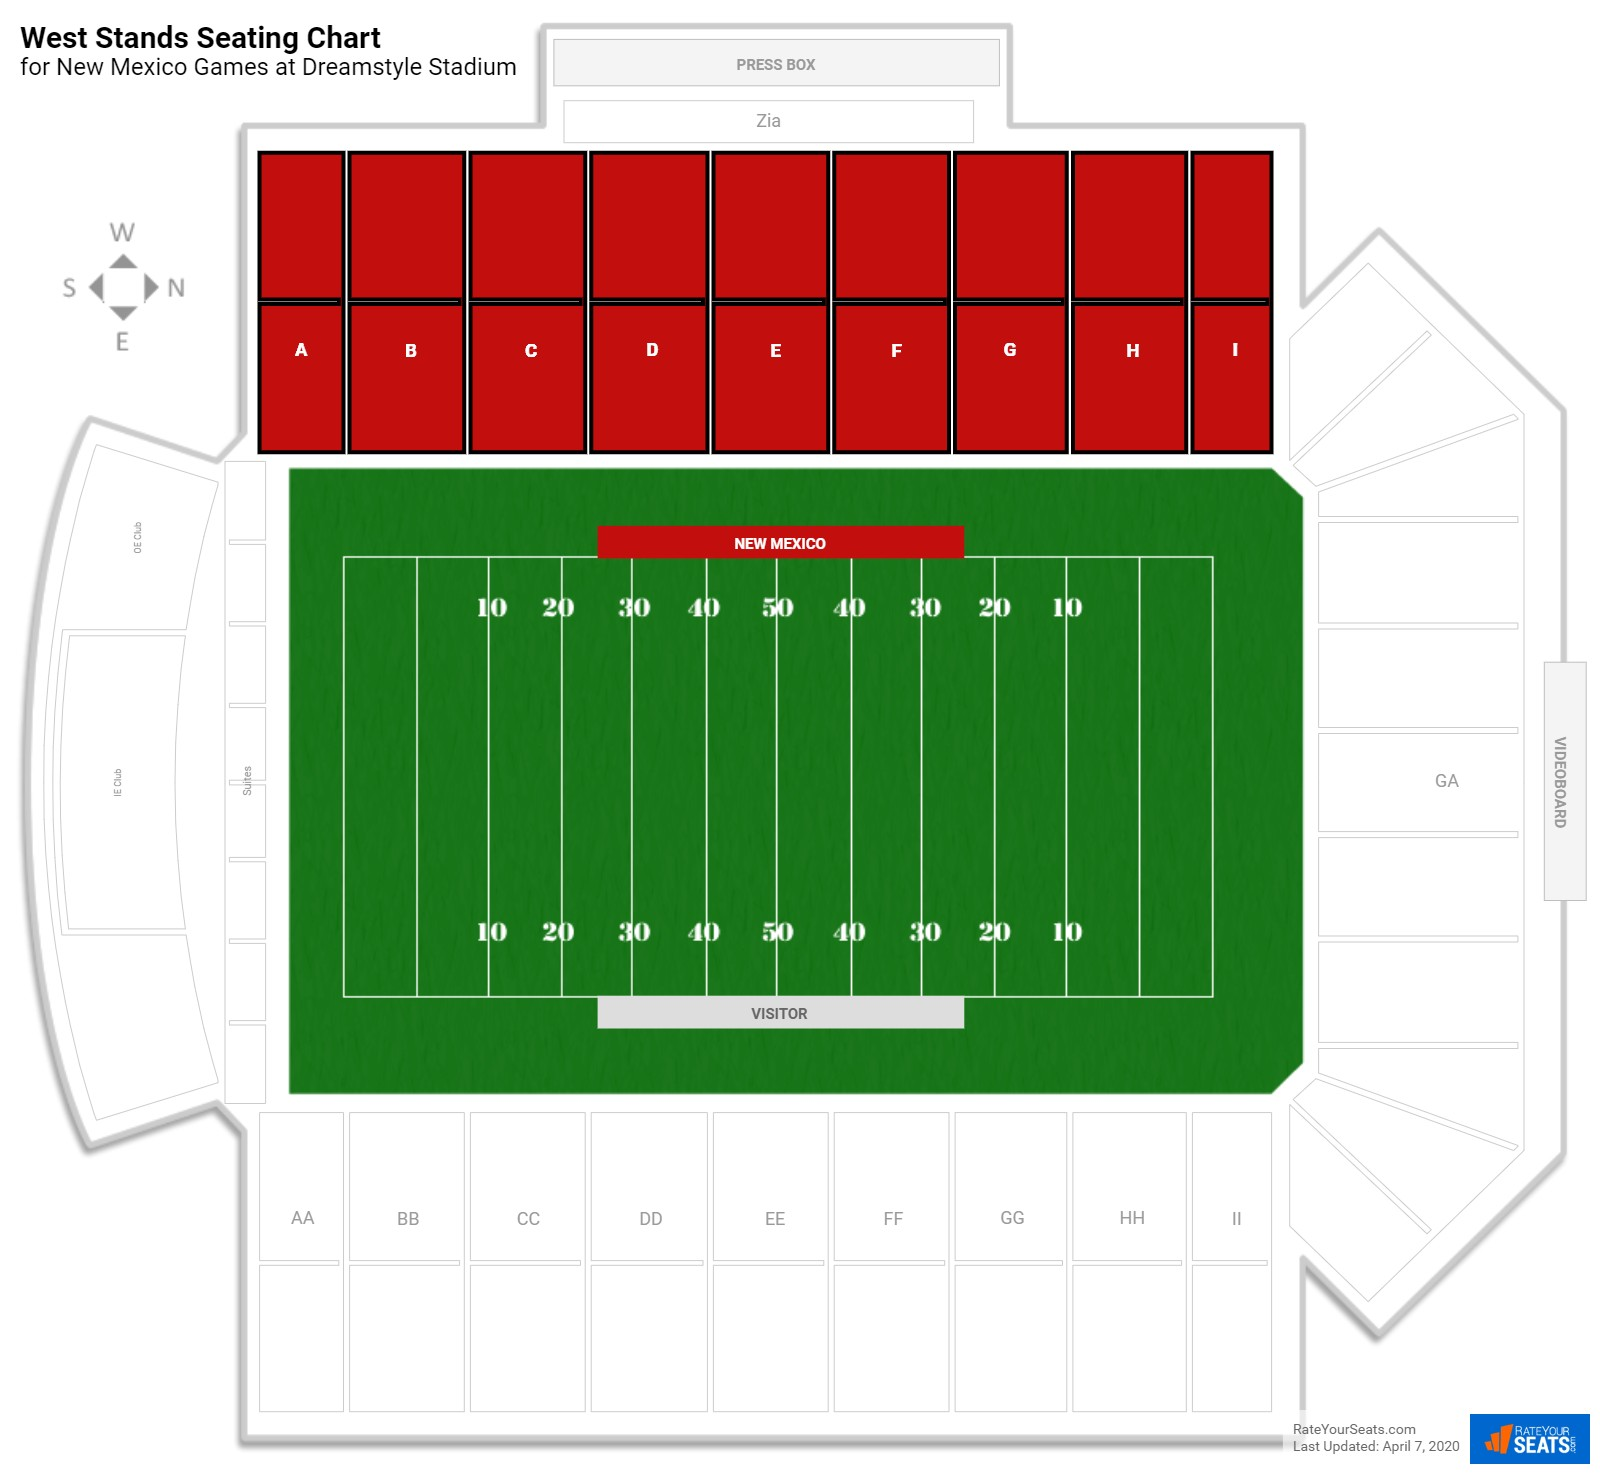 University Stadium West Stands seating chart